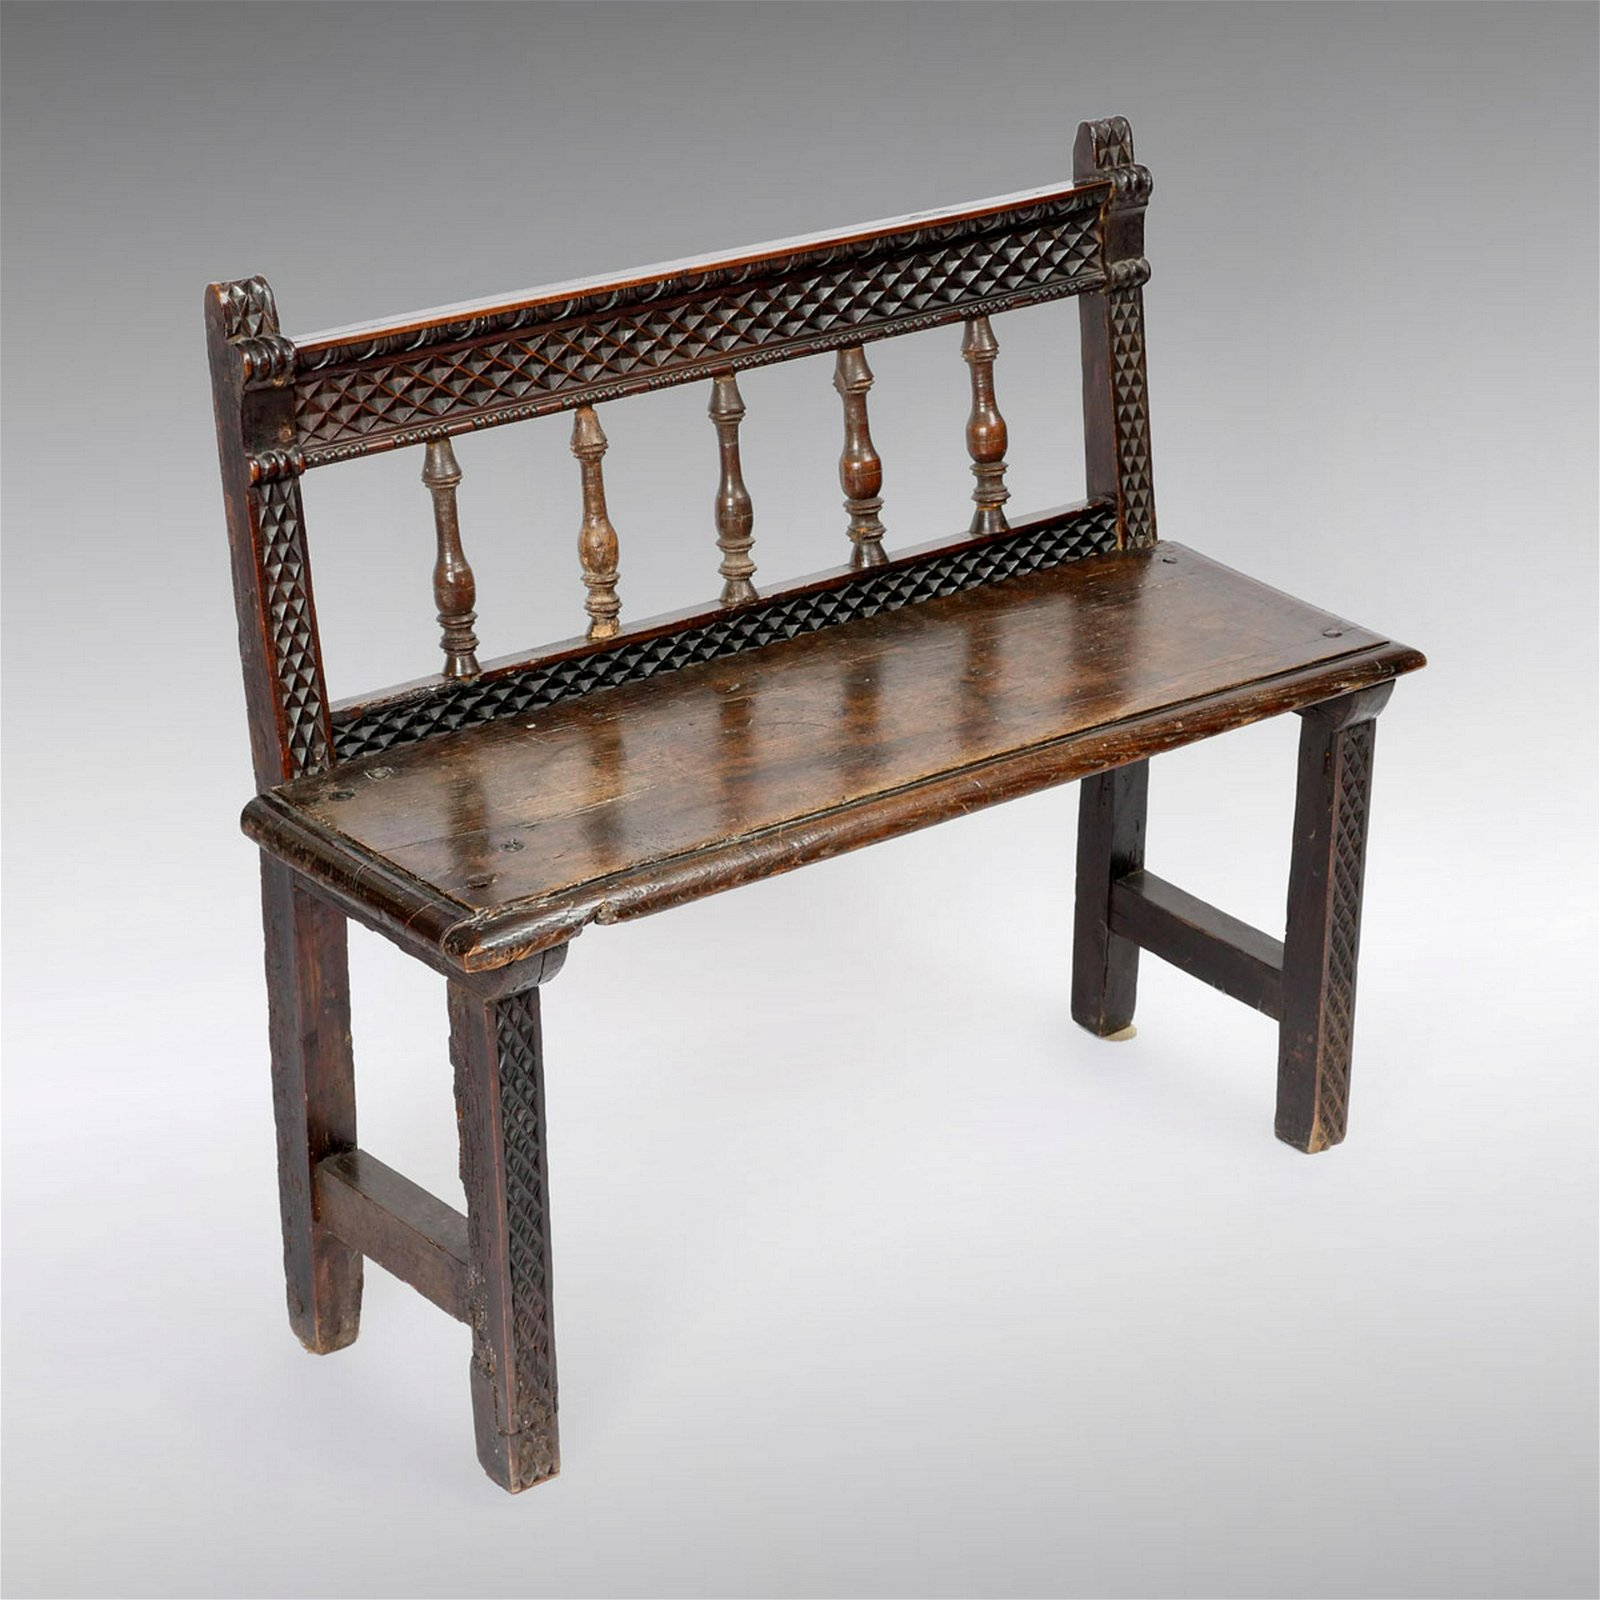 EARLY ENGLISH CARVED OAK BENCH